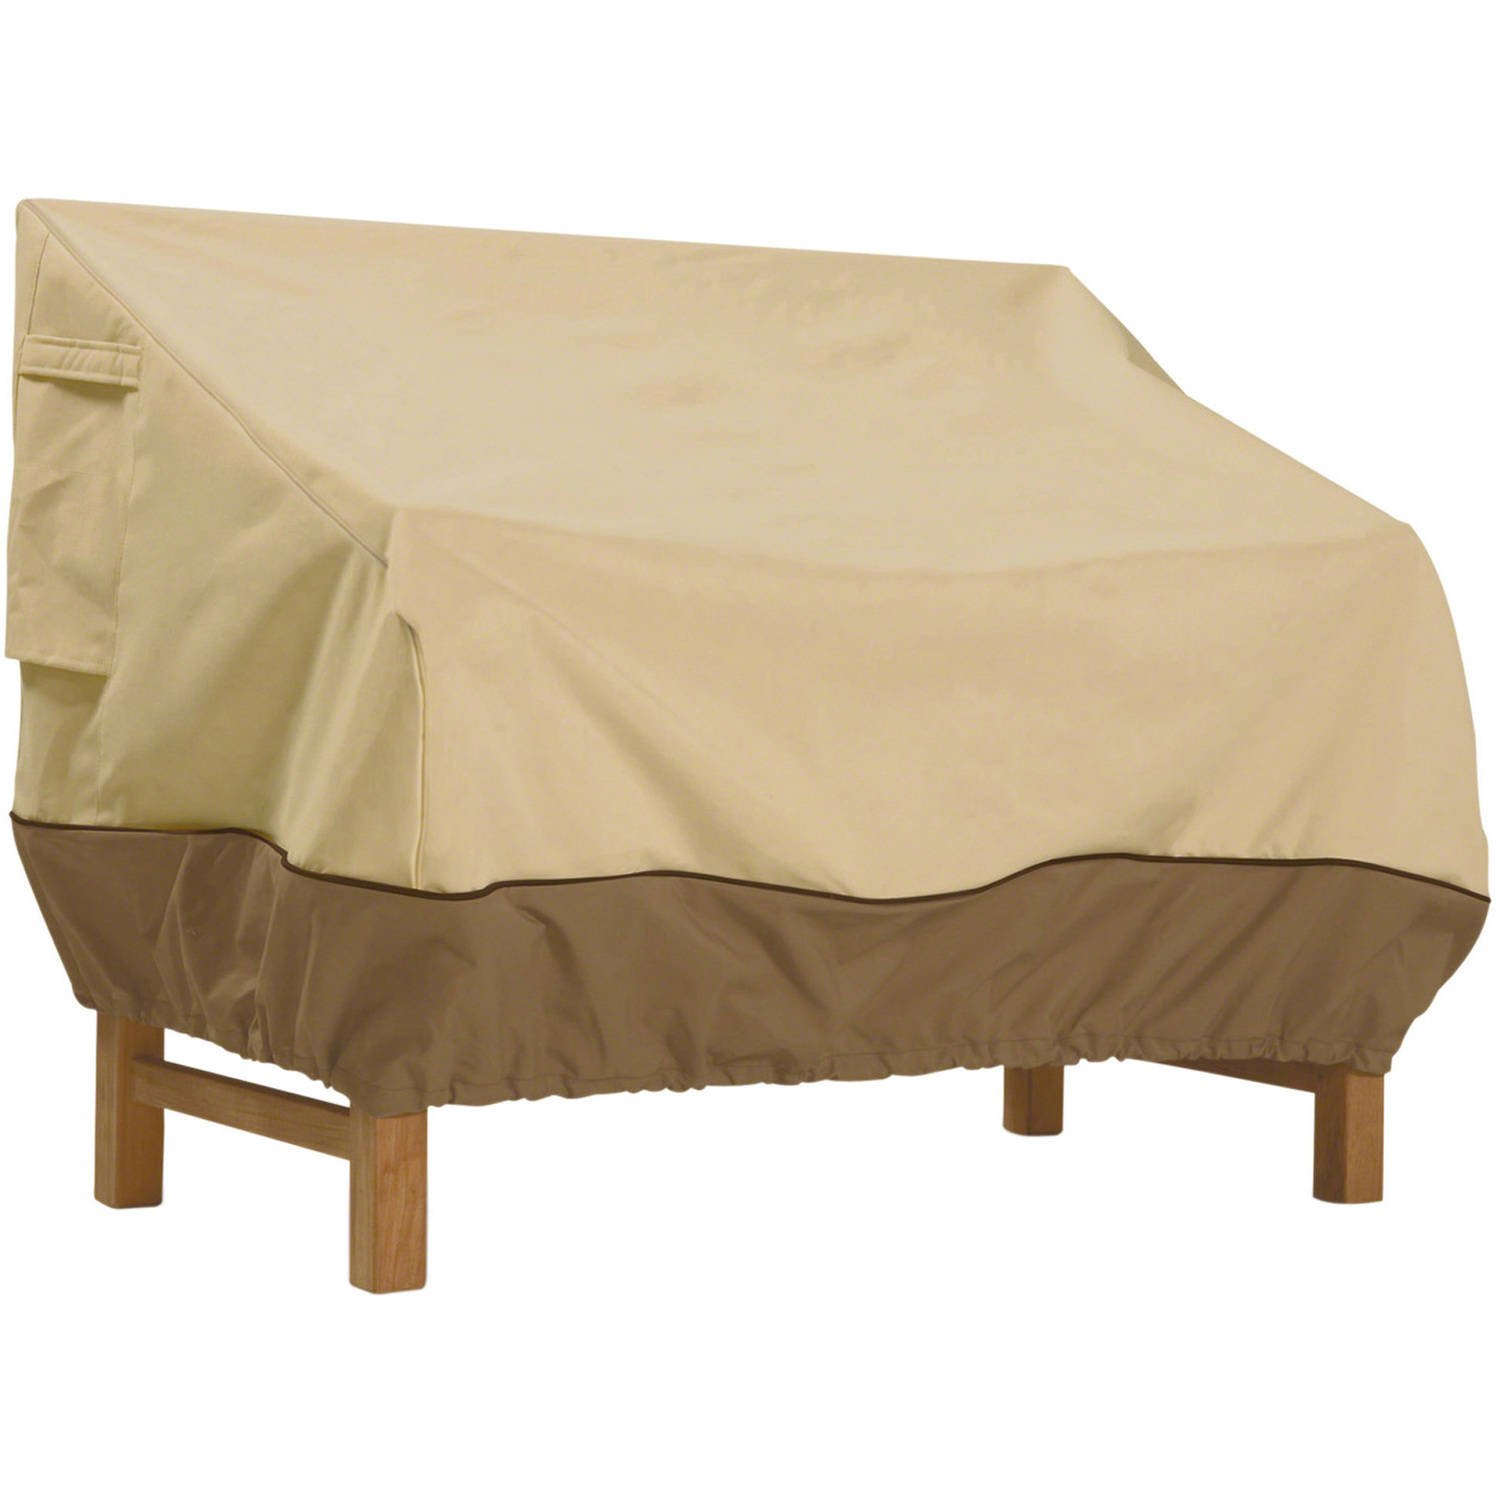 Perfect Classic Accessories Veranda Patio Bench And Loveseat Furniture Storage Cover,  Small, Fits Up To